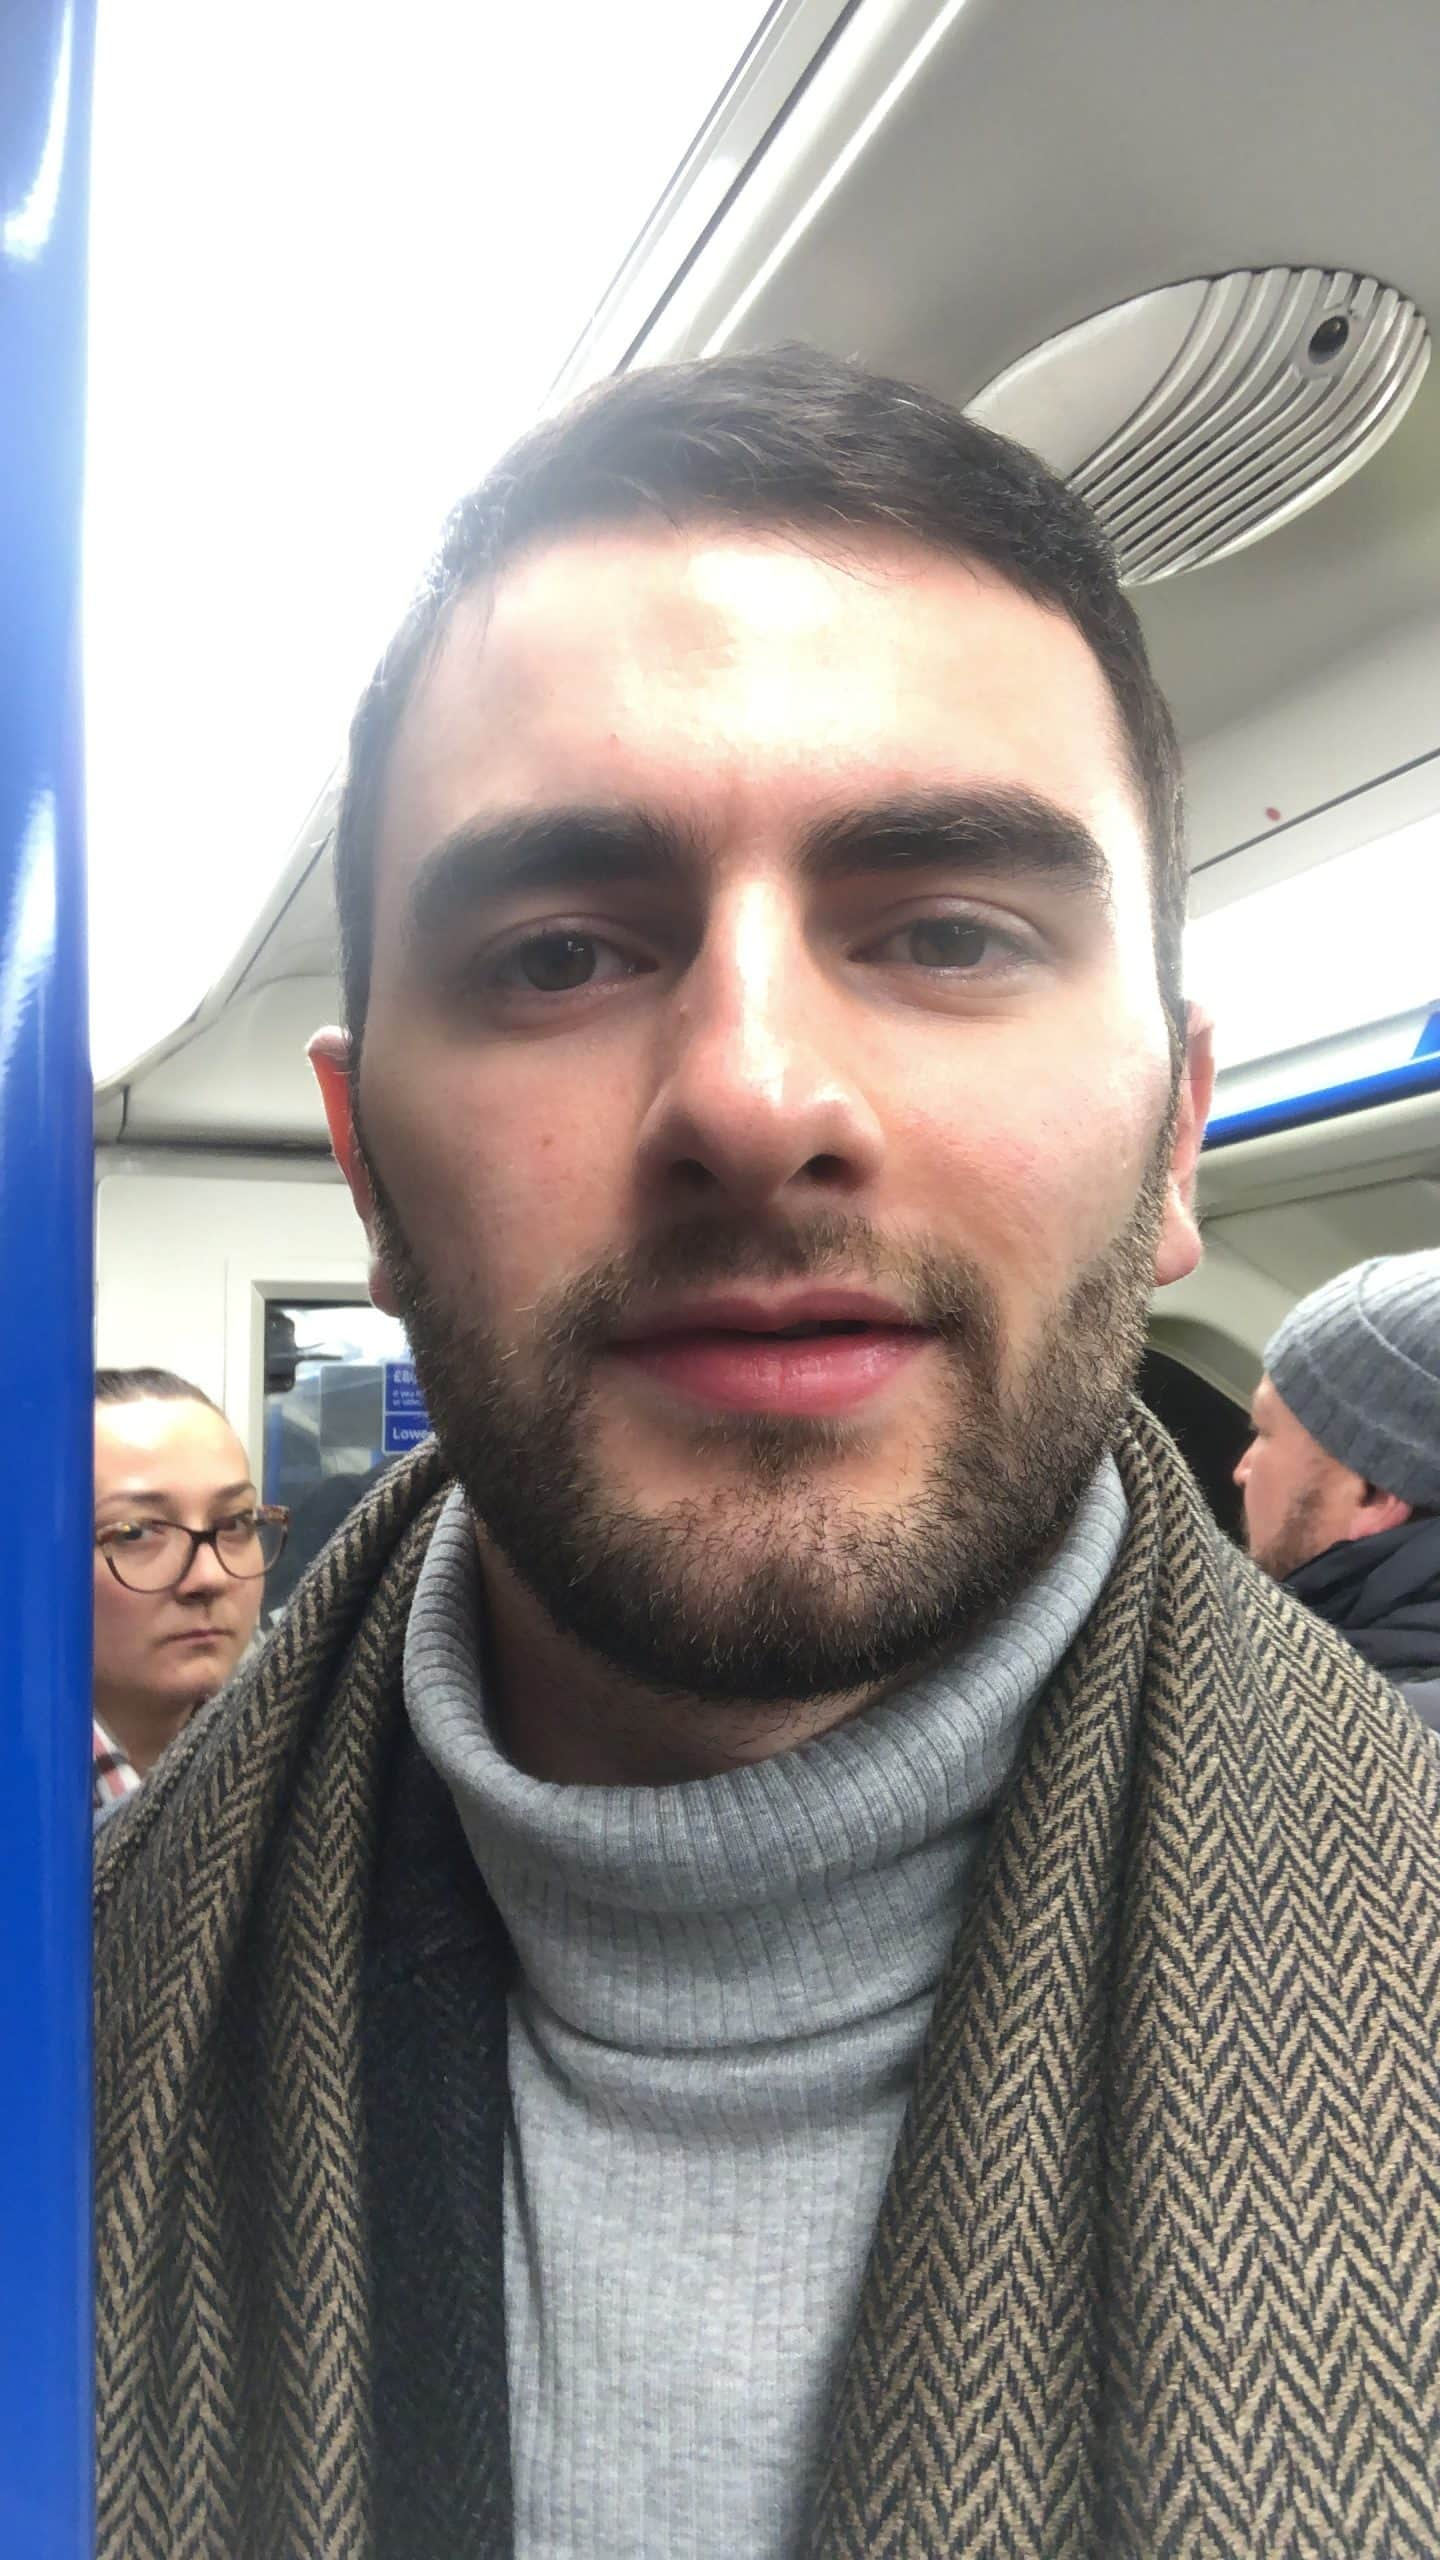 a man wearing a scarf standing on a train